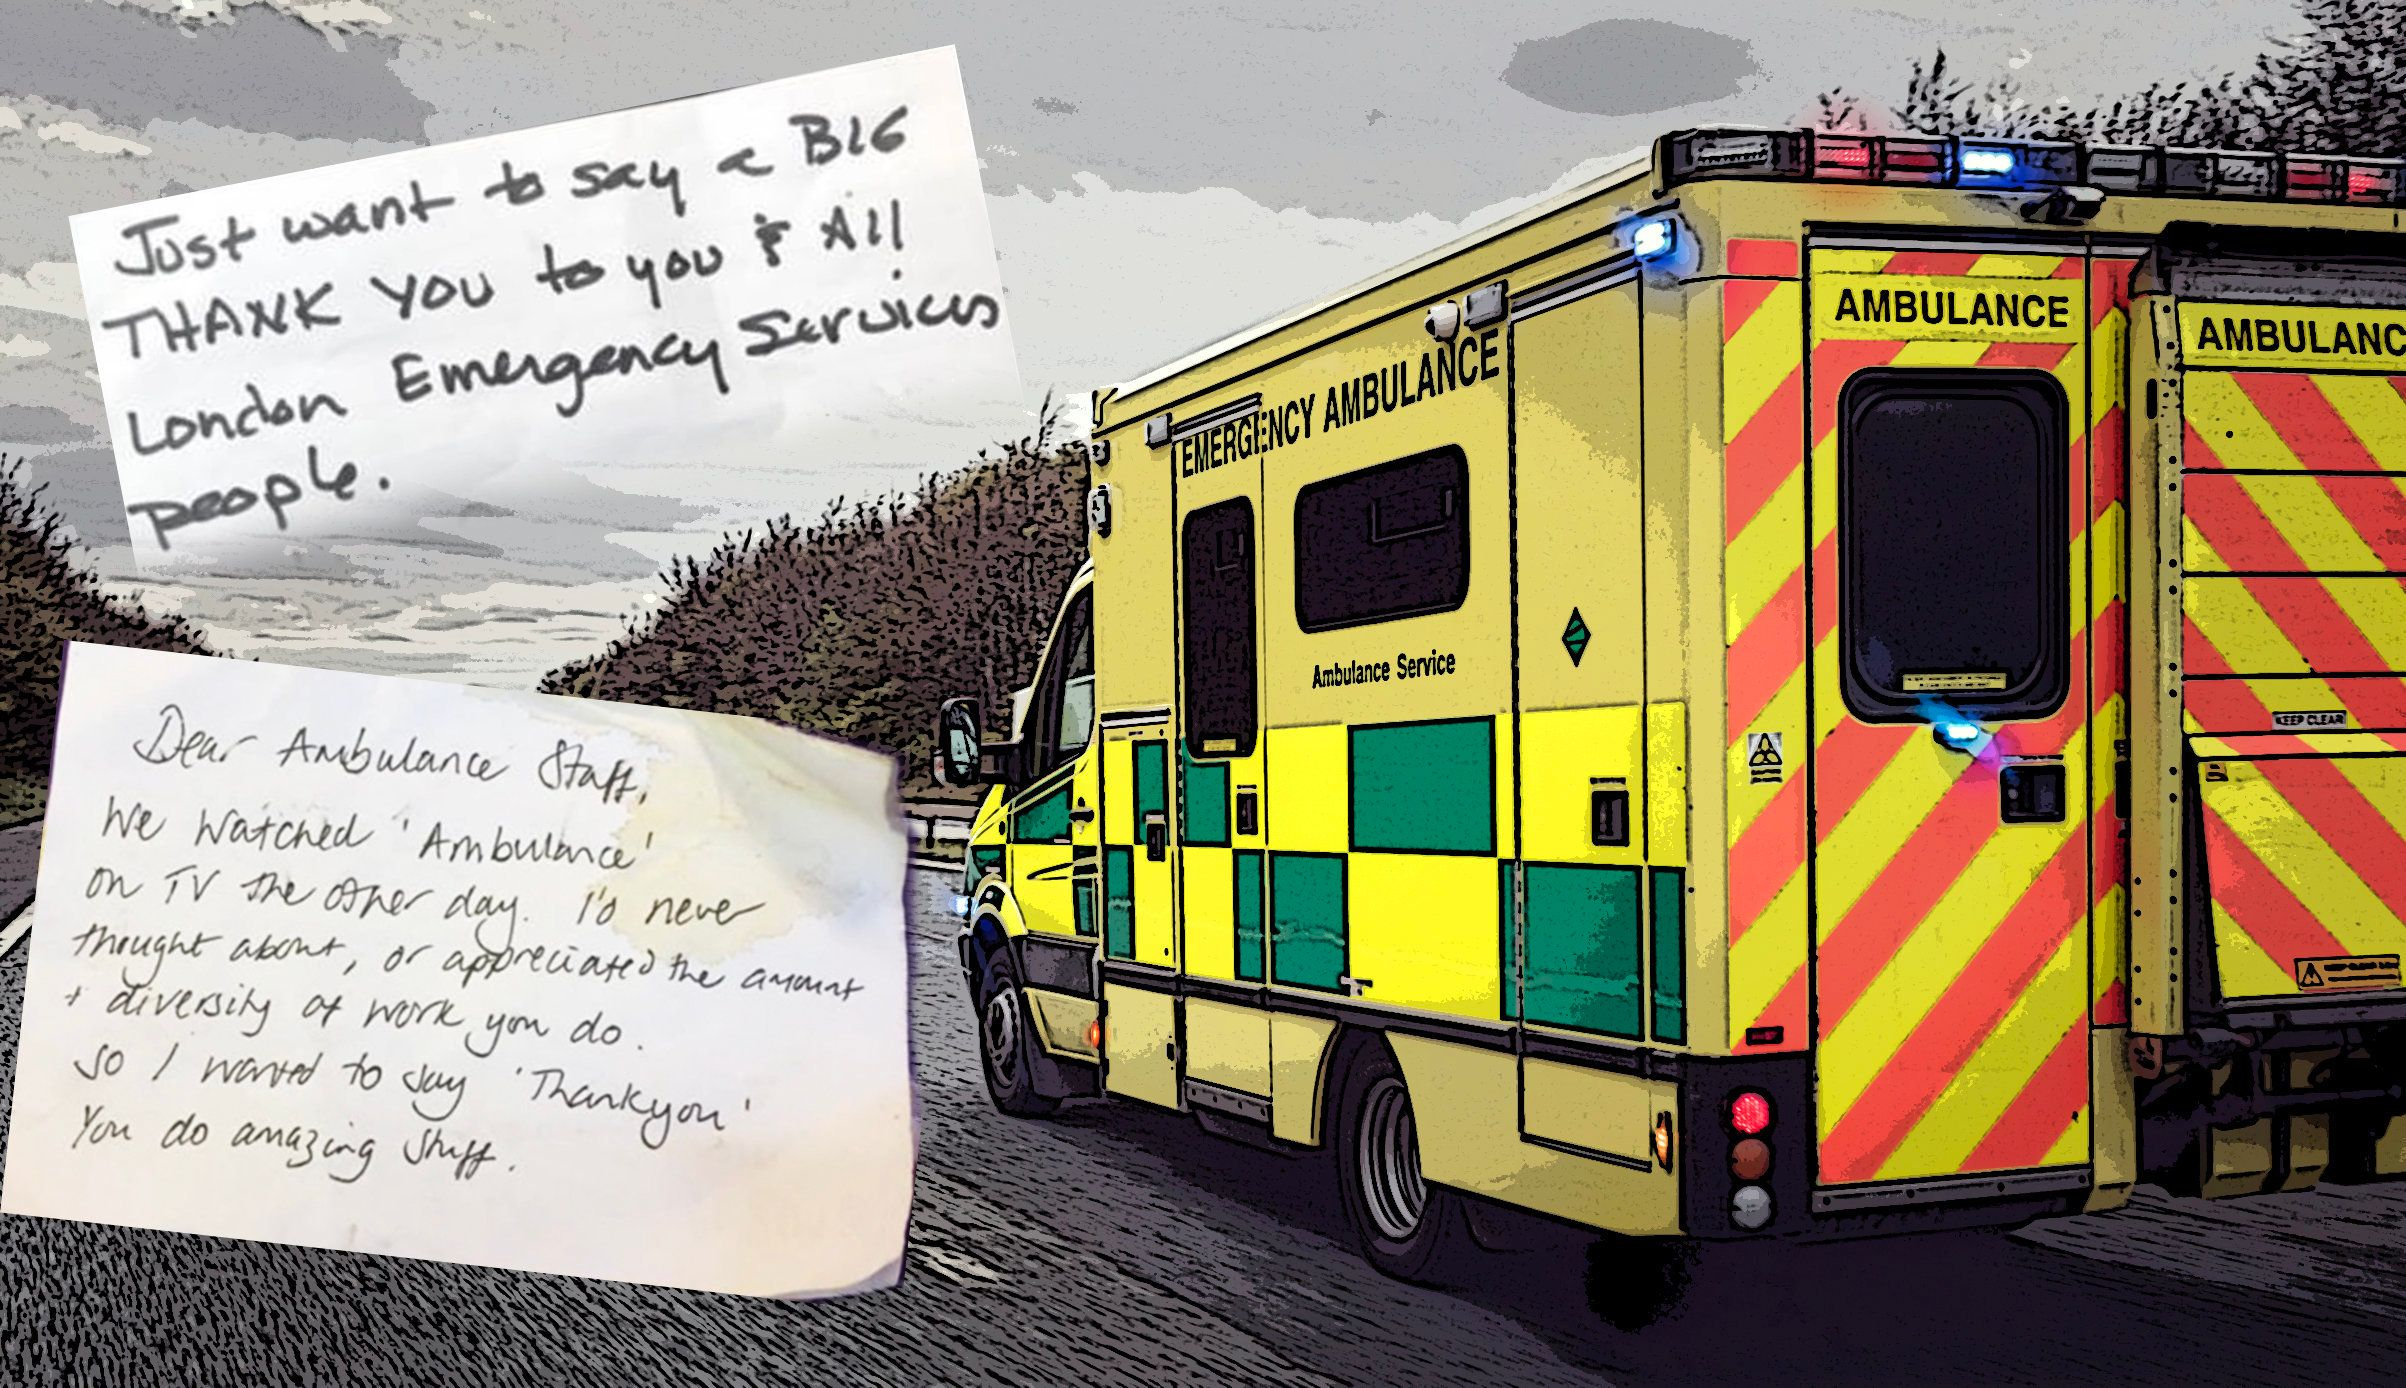 Why Do People Leave Notes And Money For Ambulance Services? People Share Their Stories